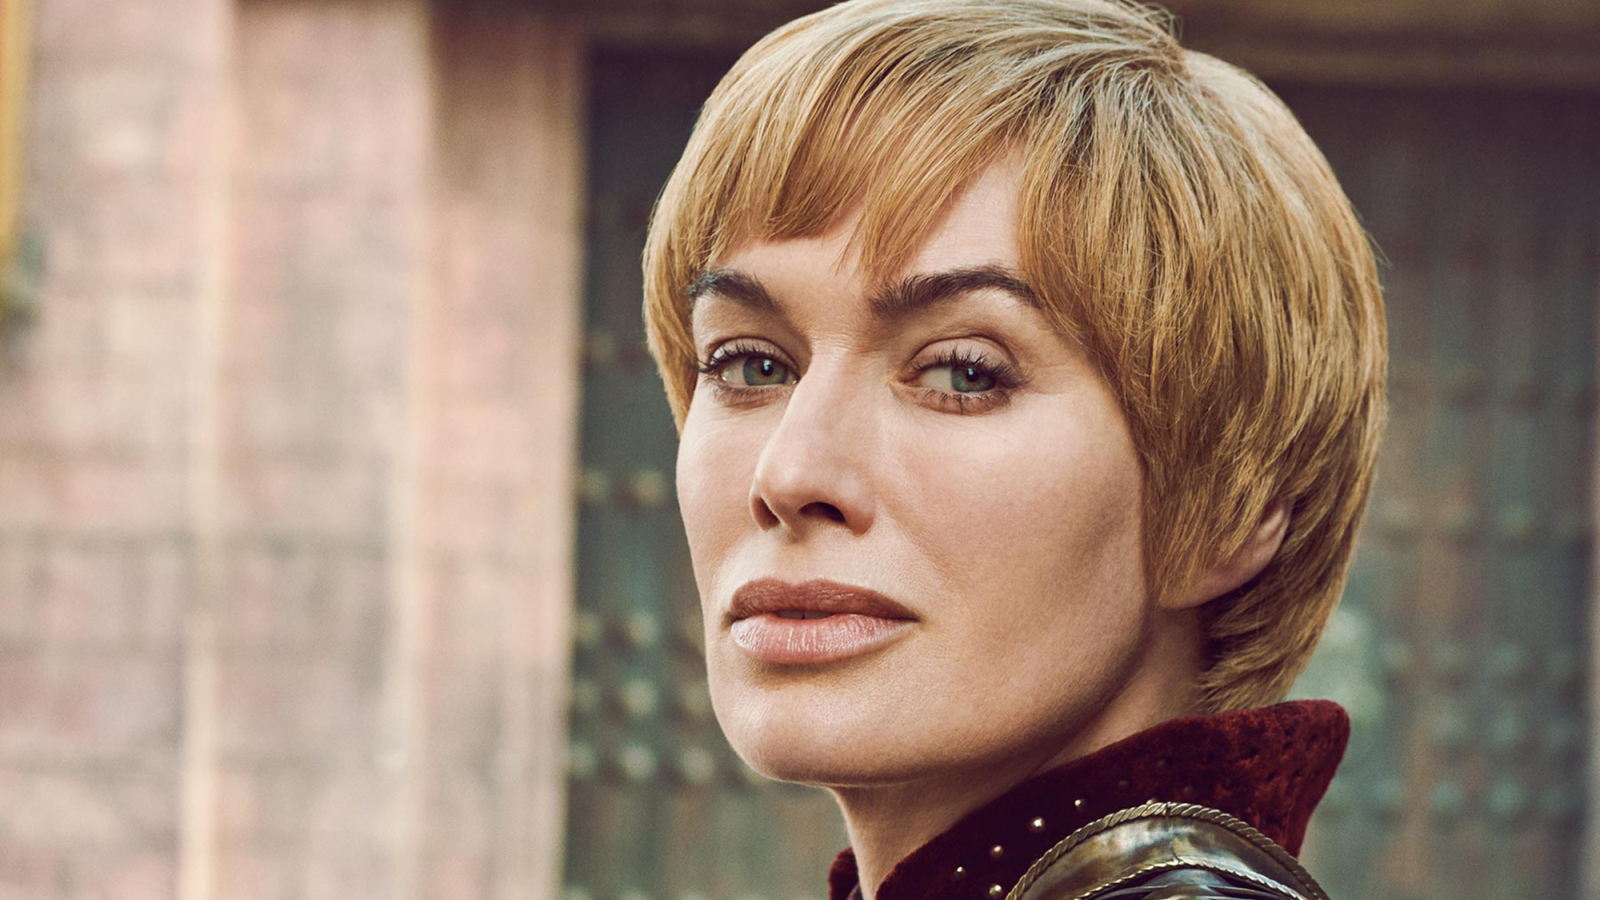 1600x900 Cersei Lannister Game Of Thrones 8 Portrait